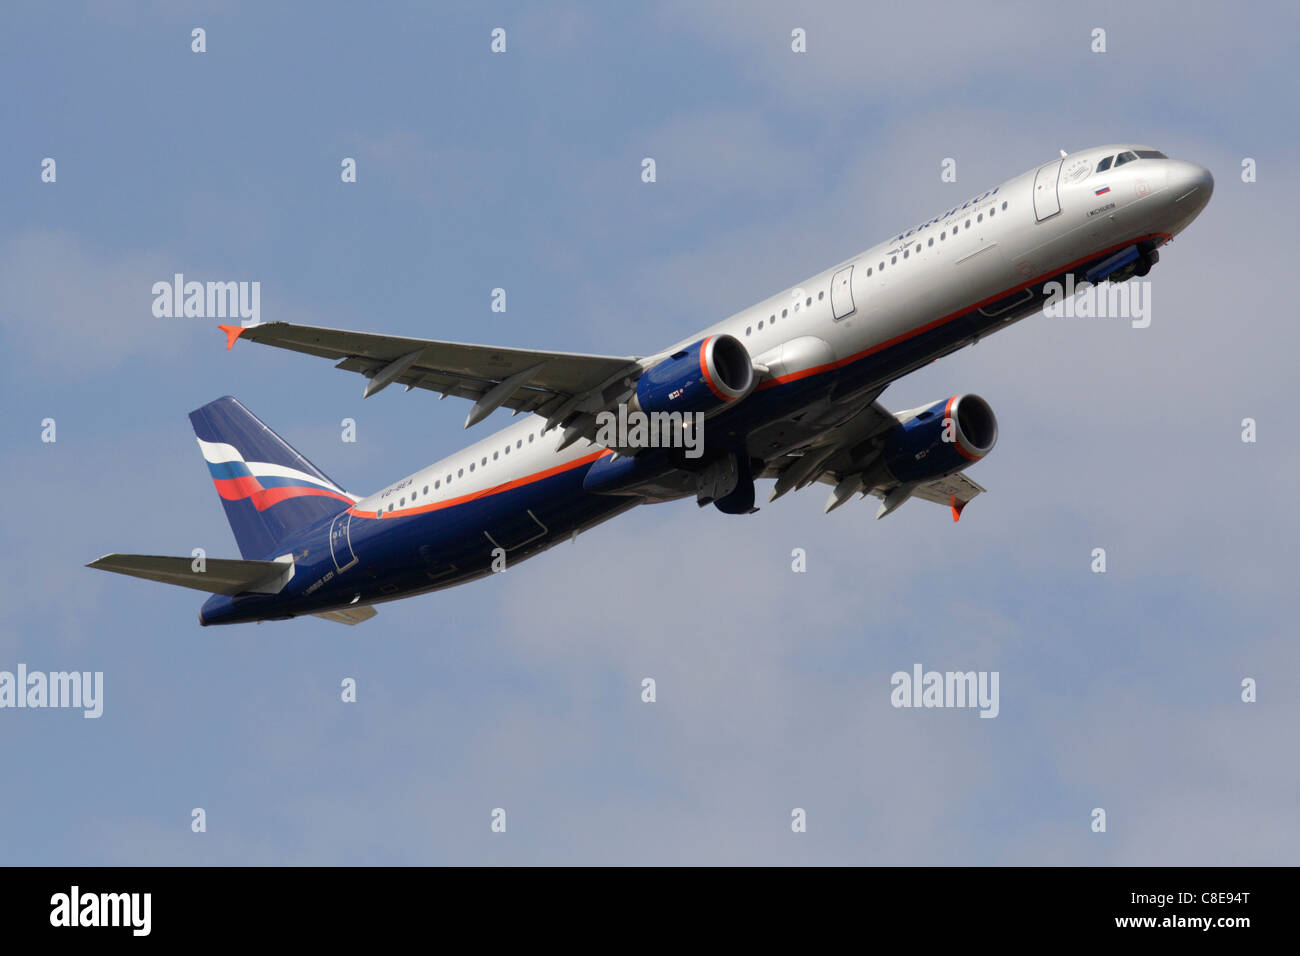 Commercial aviation. Airbus A321 narrowbody passenger jet plane belonging to Russian airline Aeroflot on takeoff - Stock Image